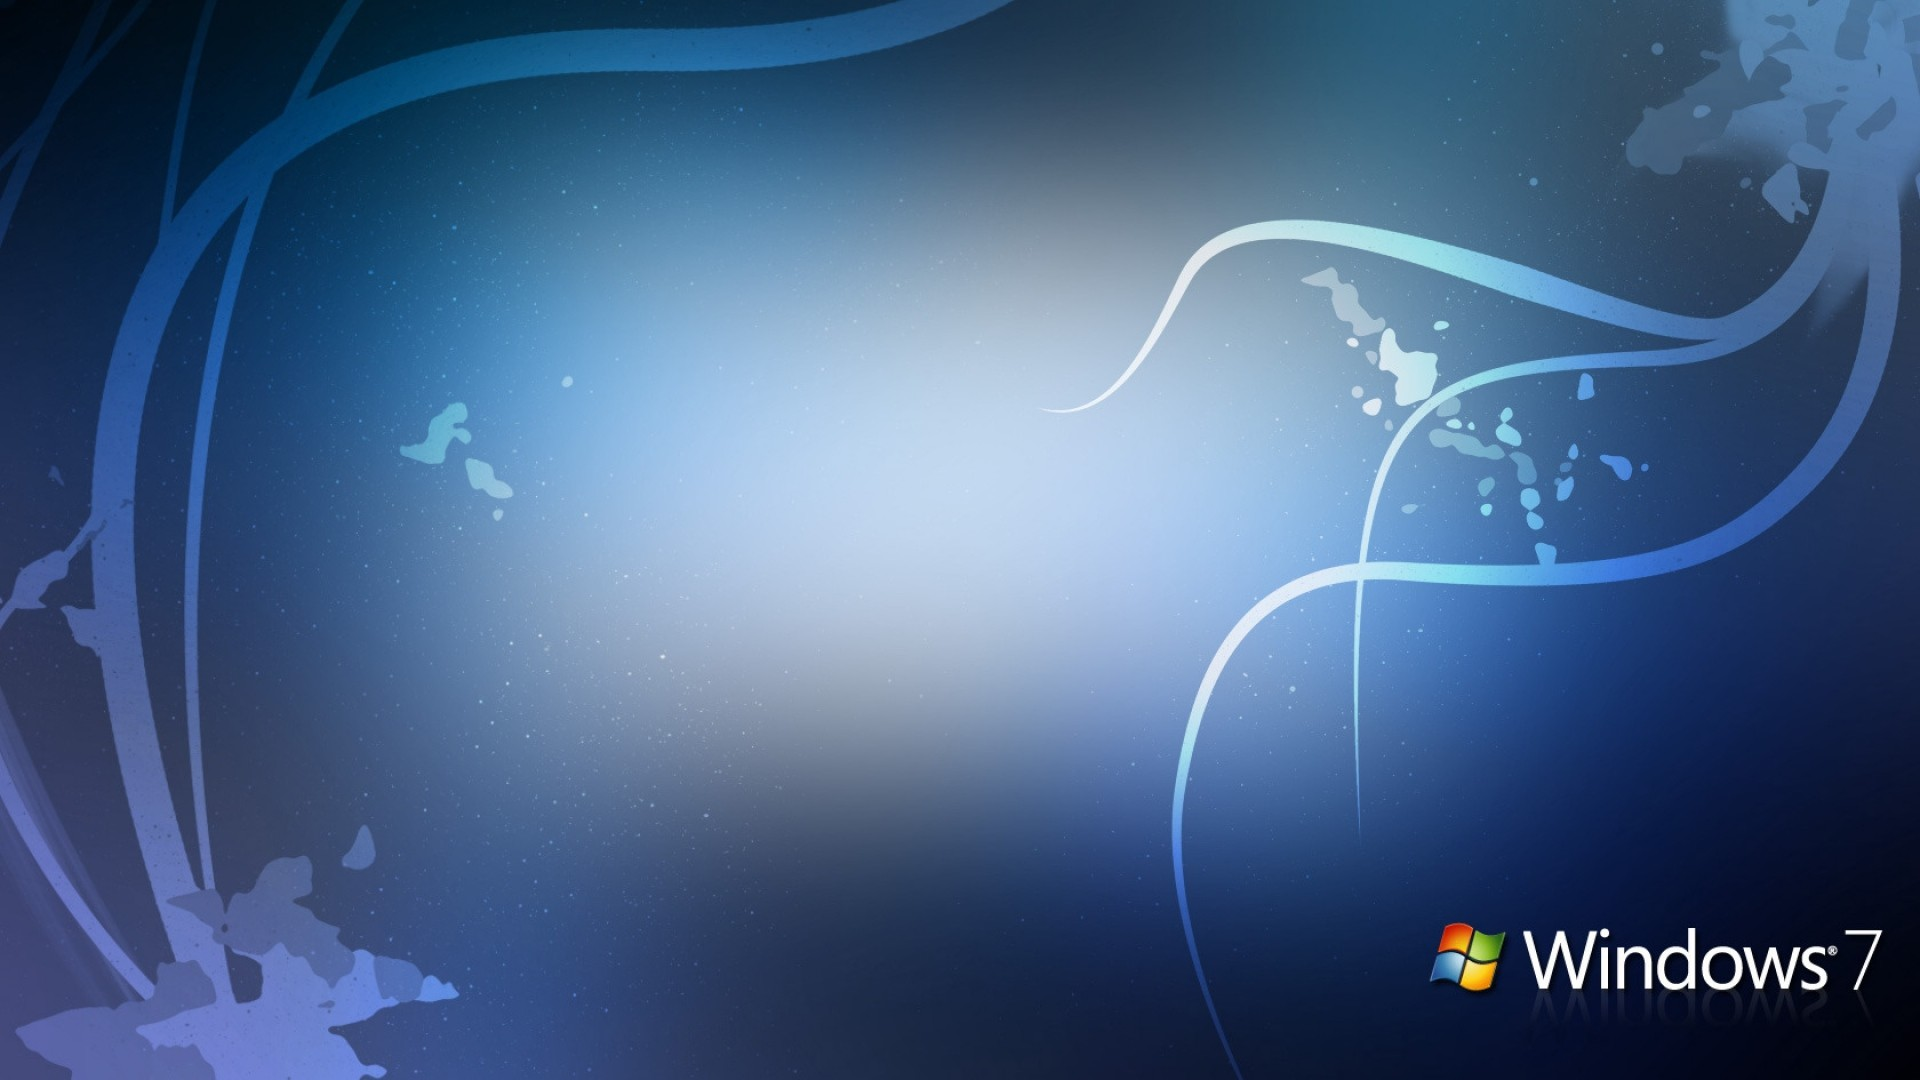 Windows 7 Background Pictures 71 Images